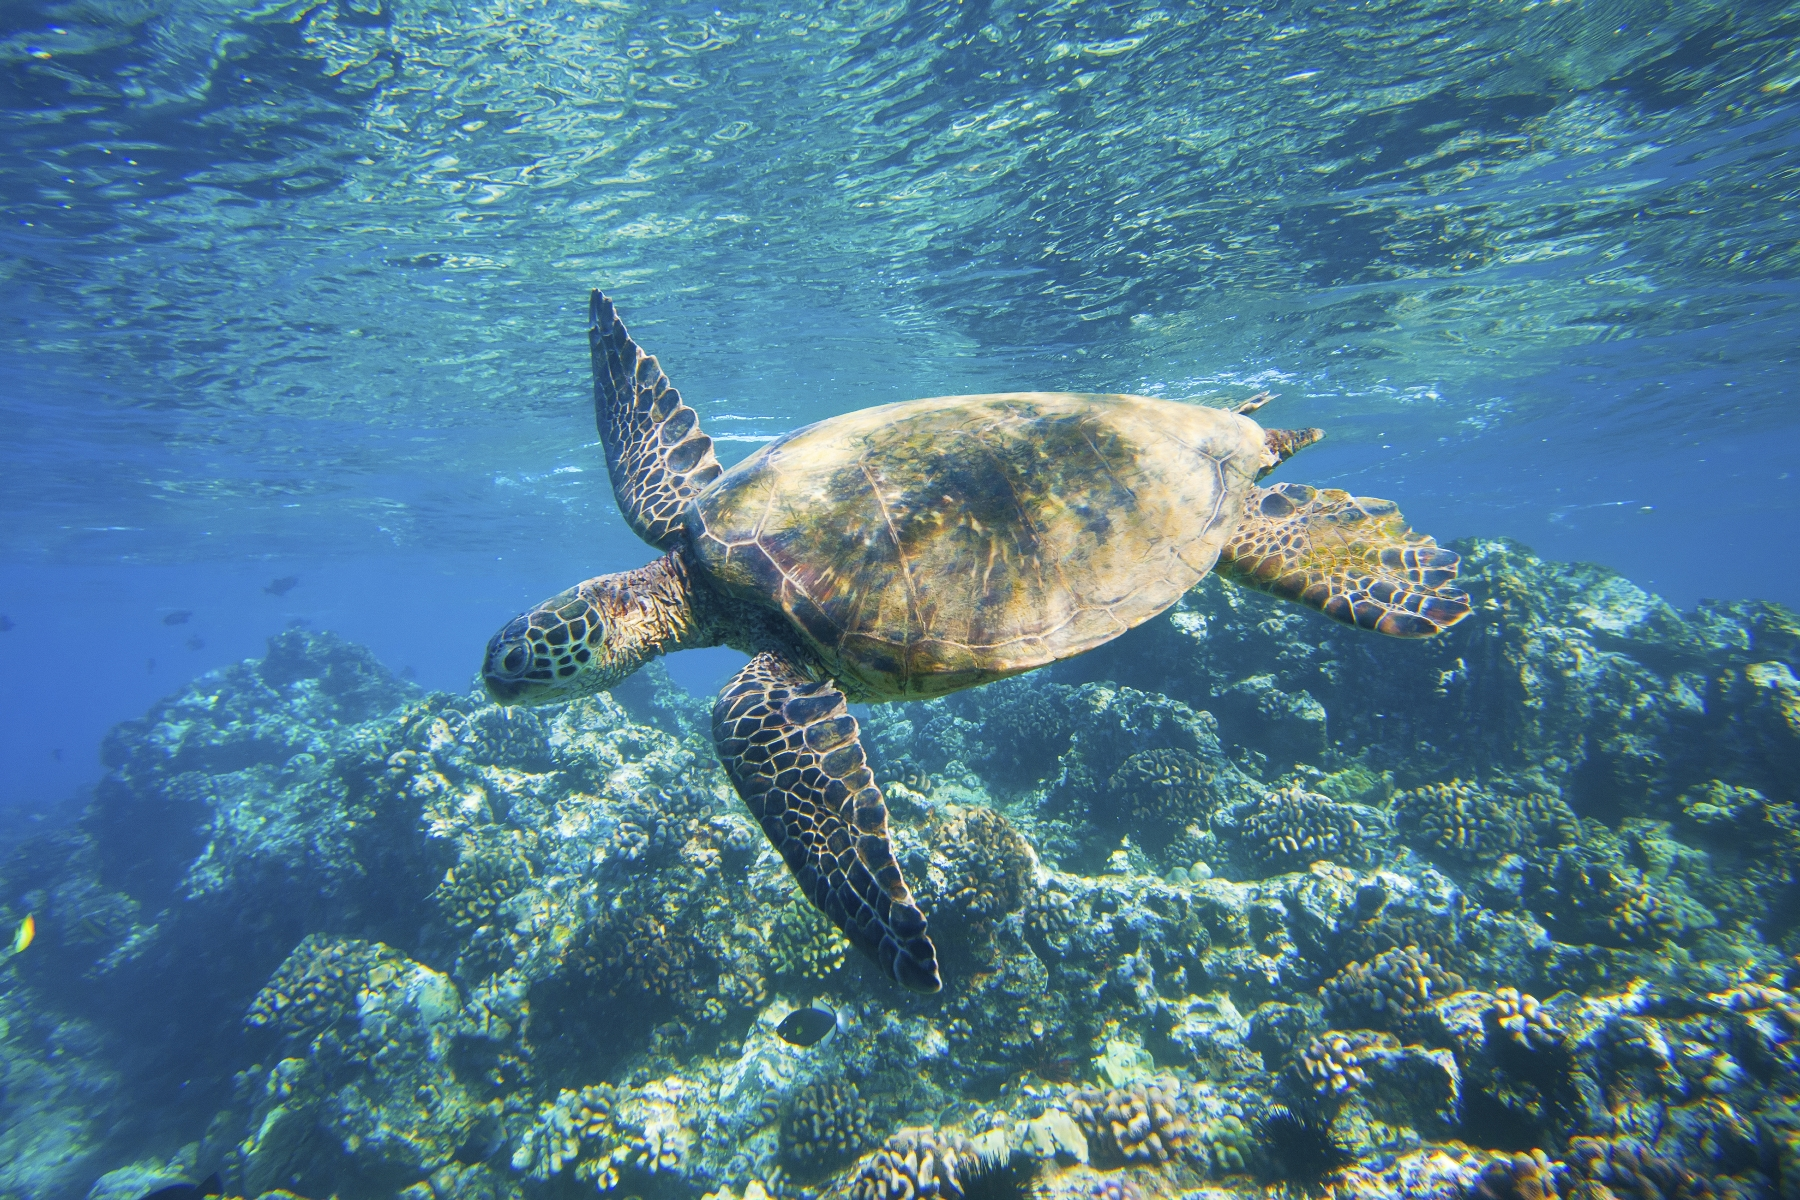 Maui Hawaii Turtle Snorkeling